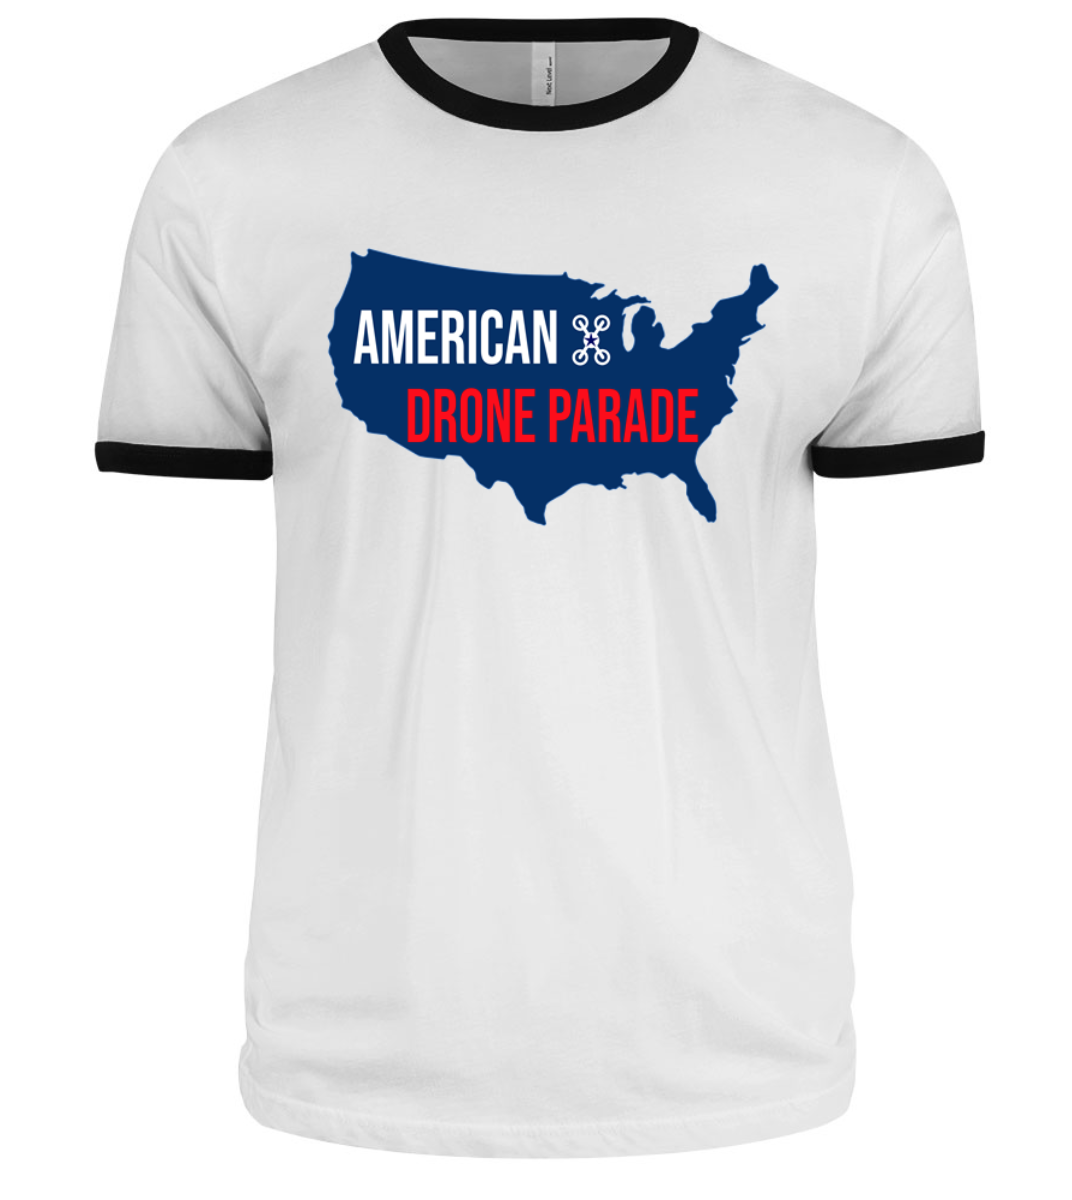 Celebrate April Fools with an American Drone Parade T Shirt